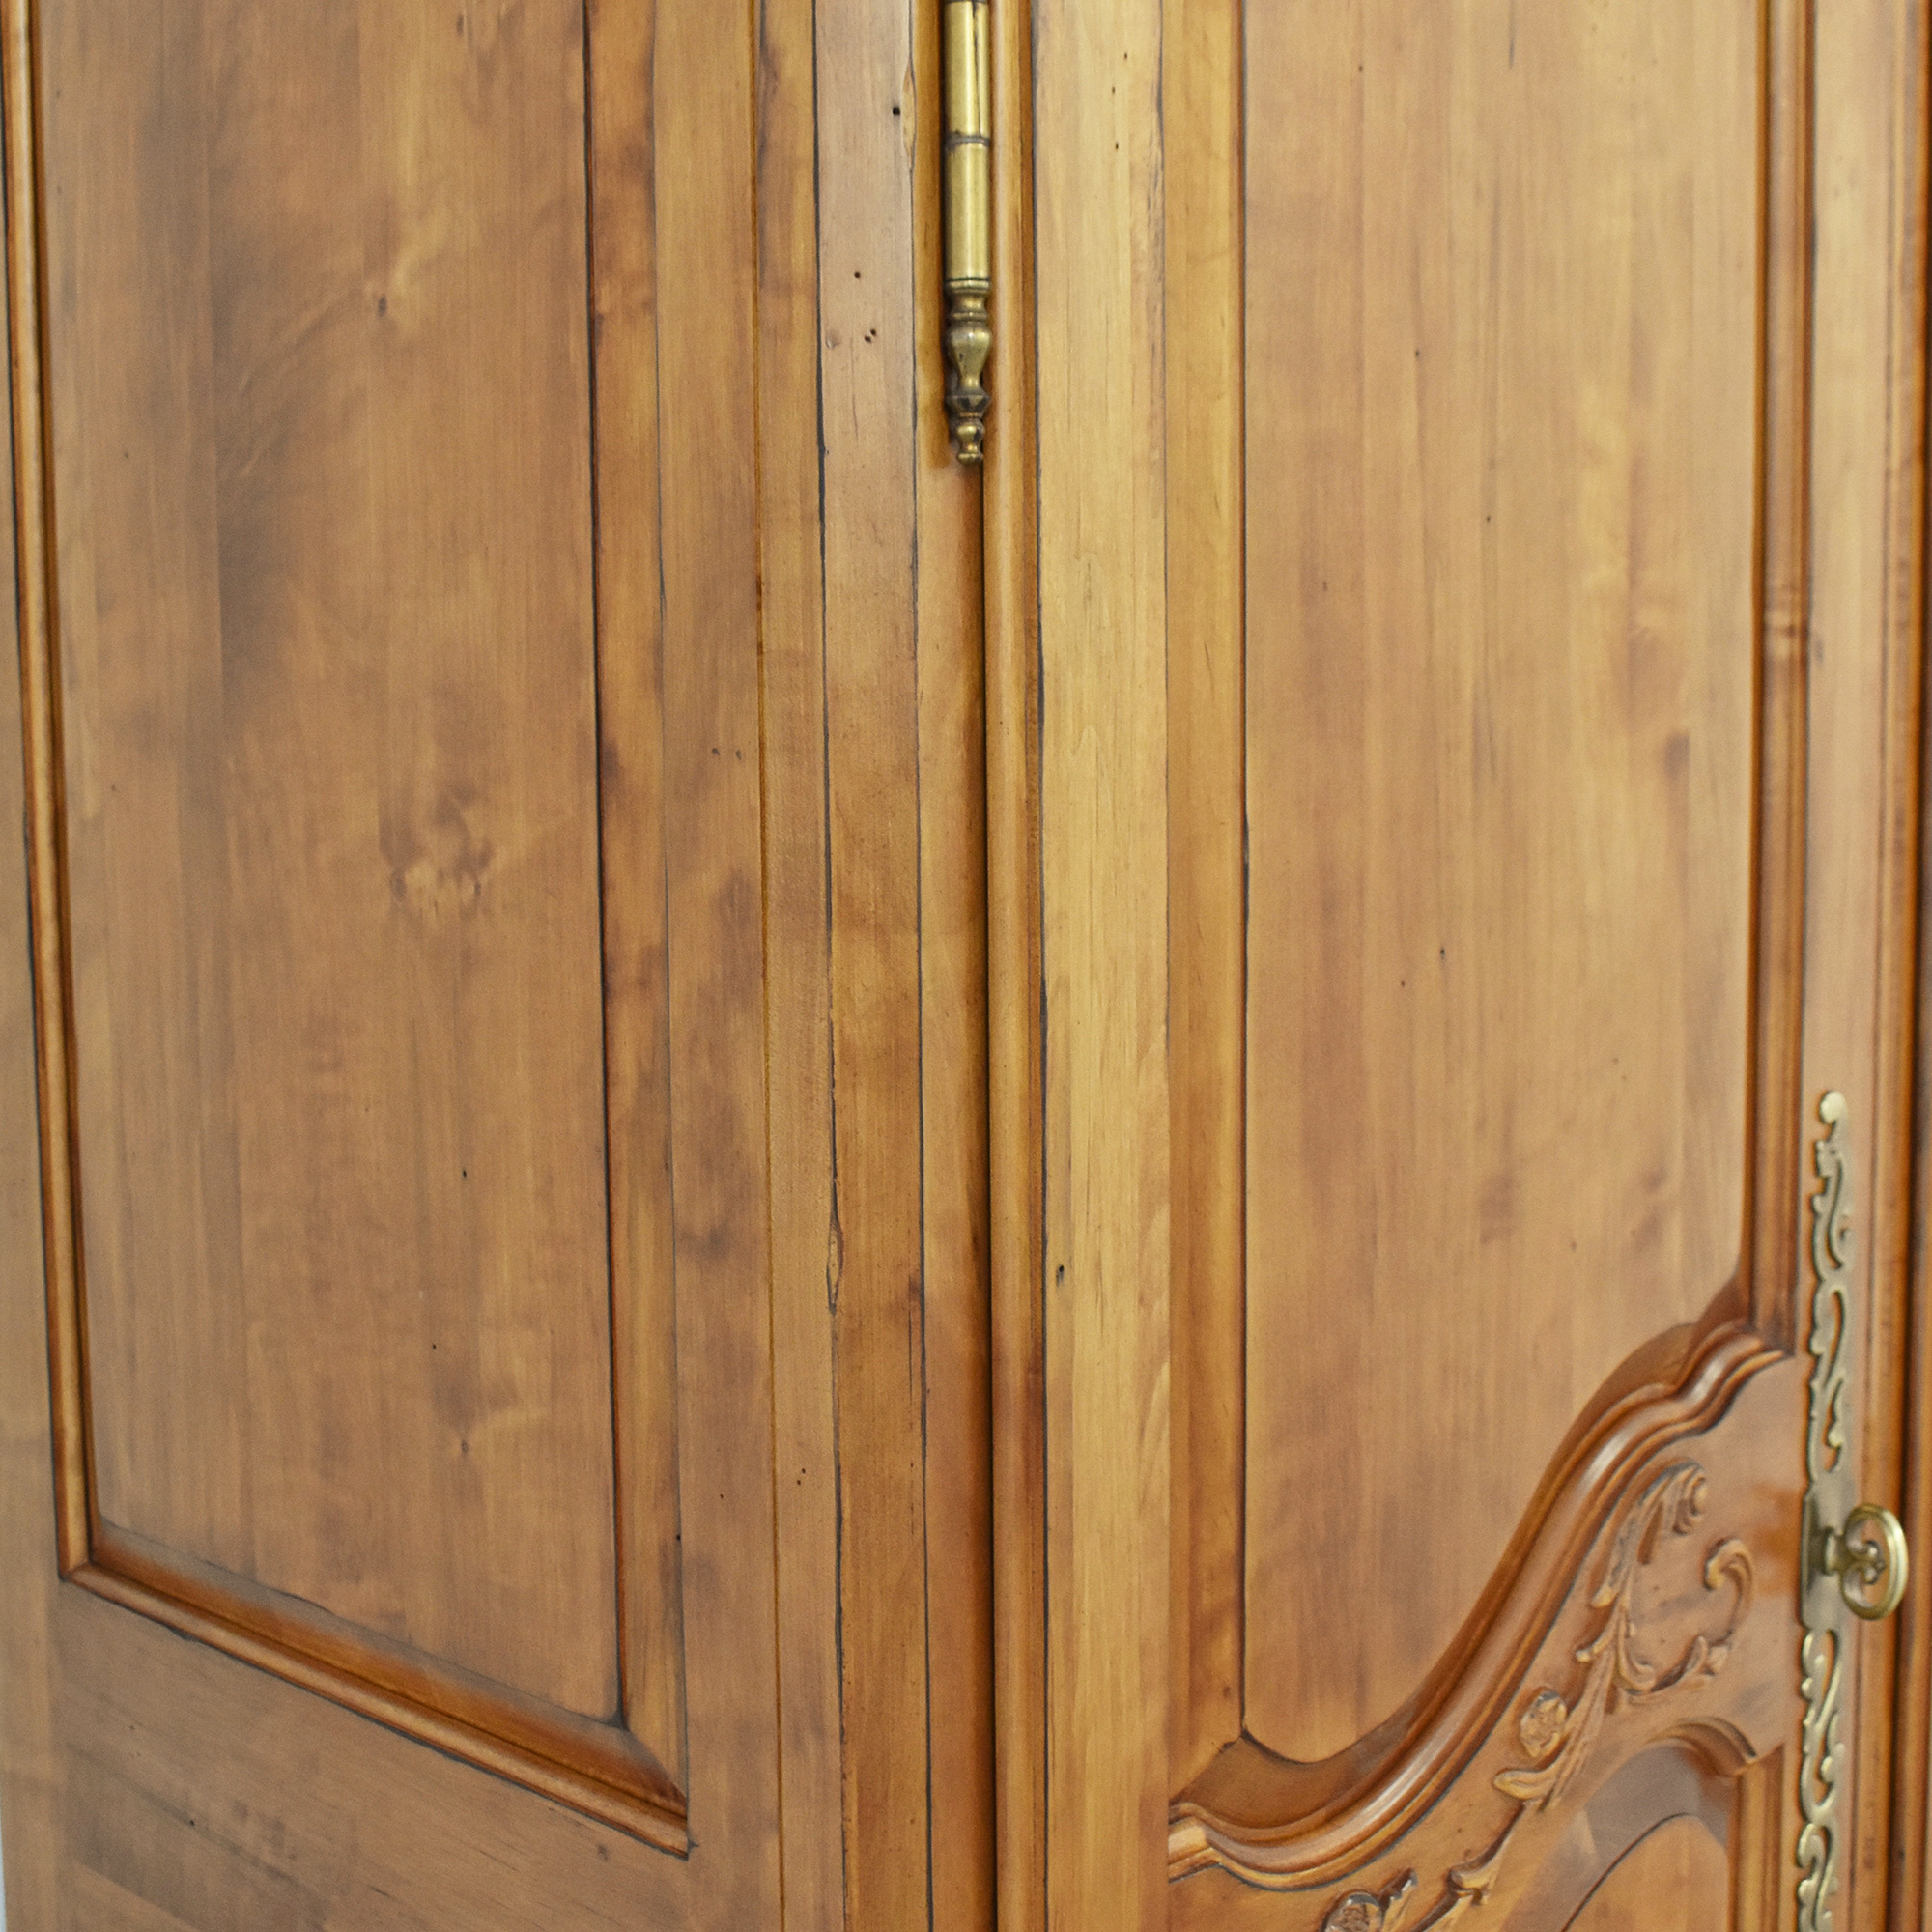 Ethan Allen Ethan Allen Legacy Country French Armoire nyc